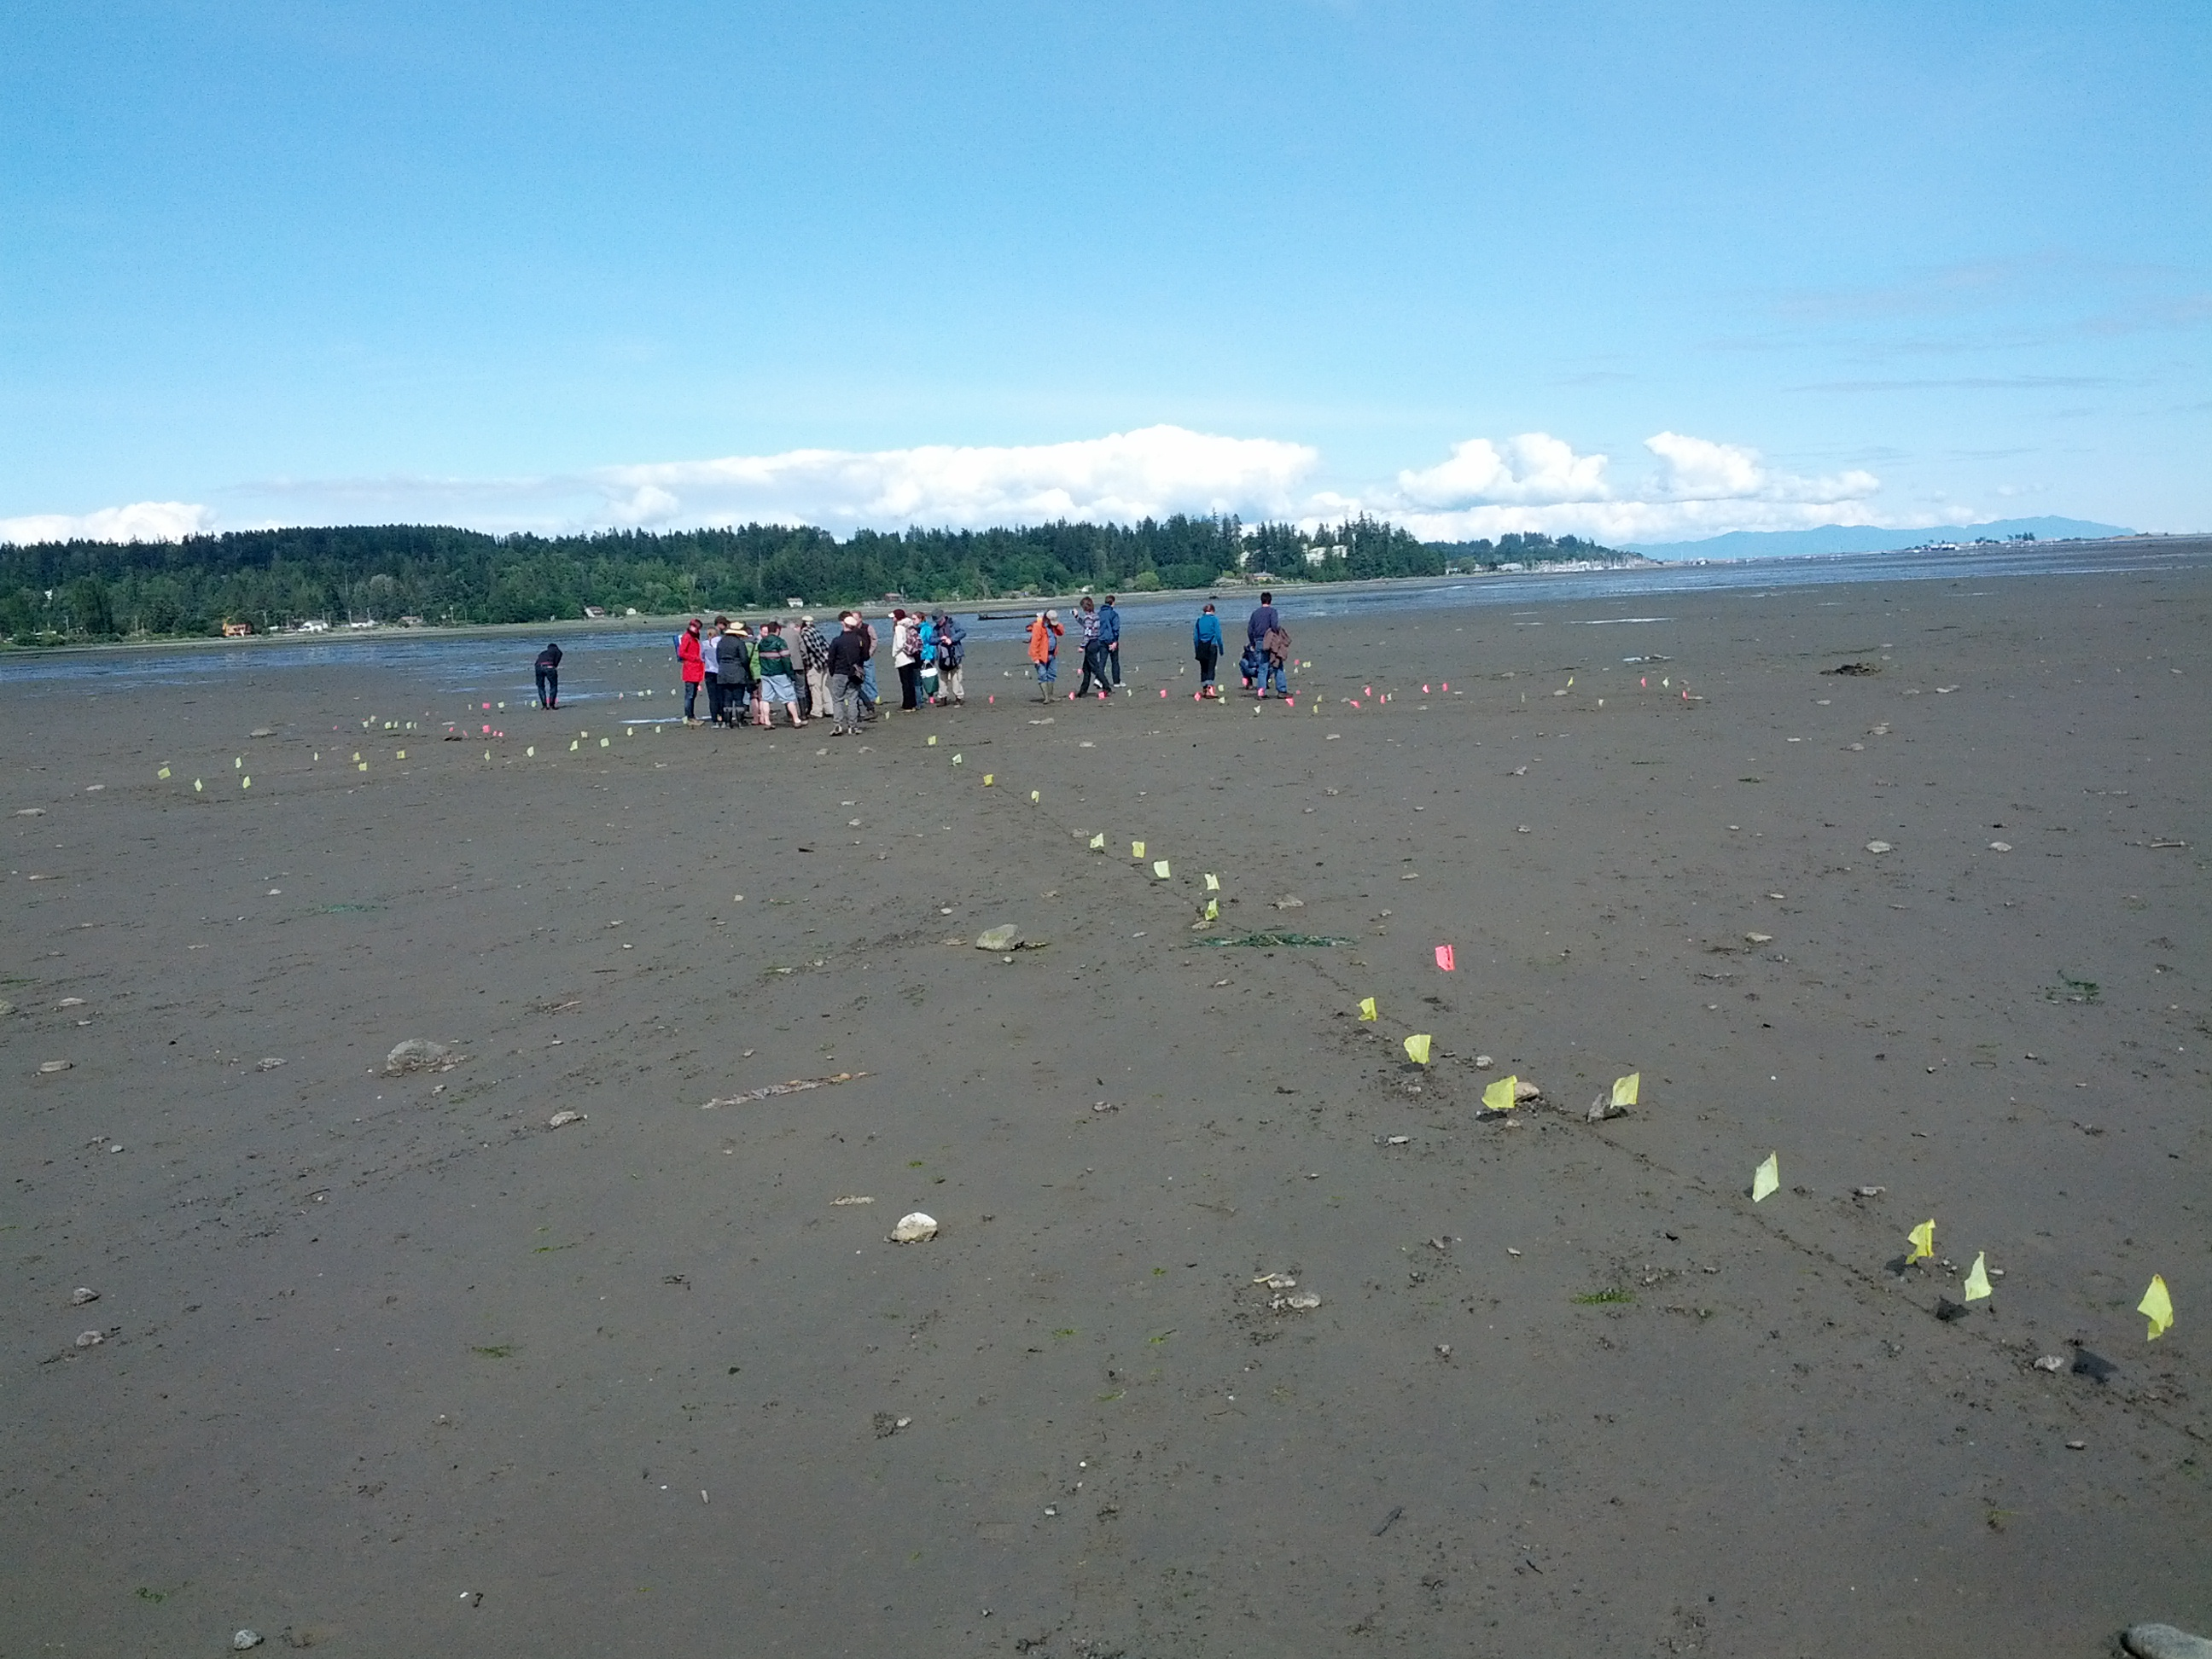 Tour of Comox Estuary intertidal fish trap archaeological site. Source: Sean Kheraj